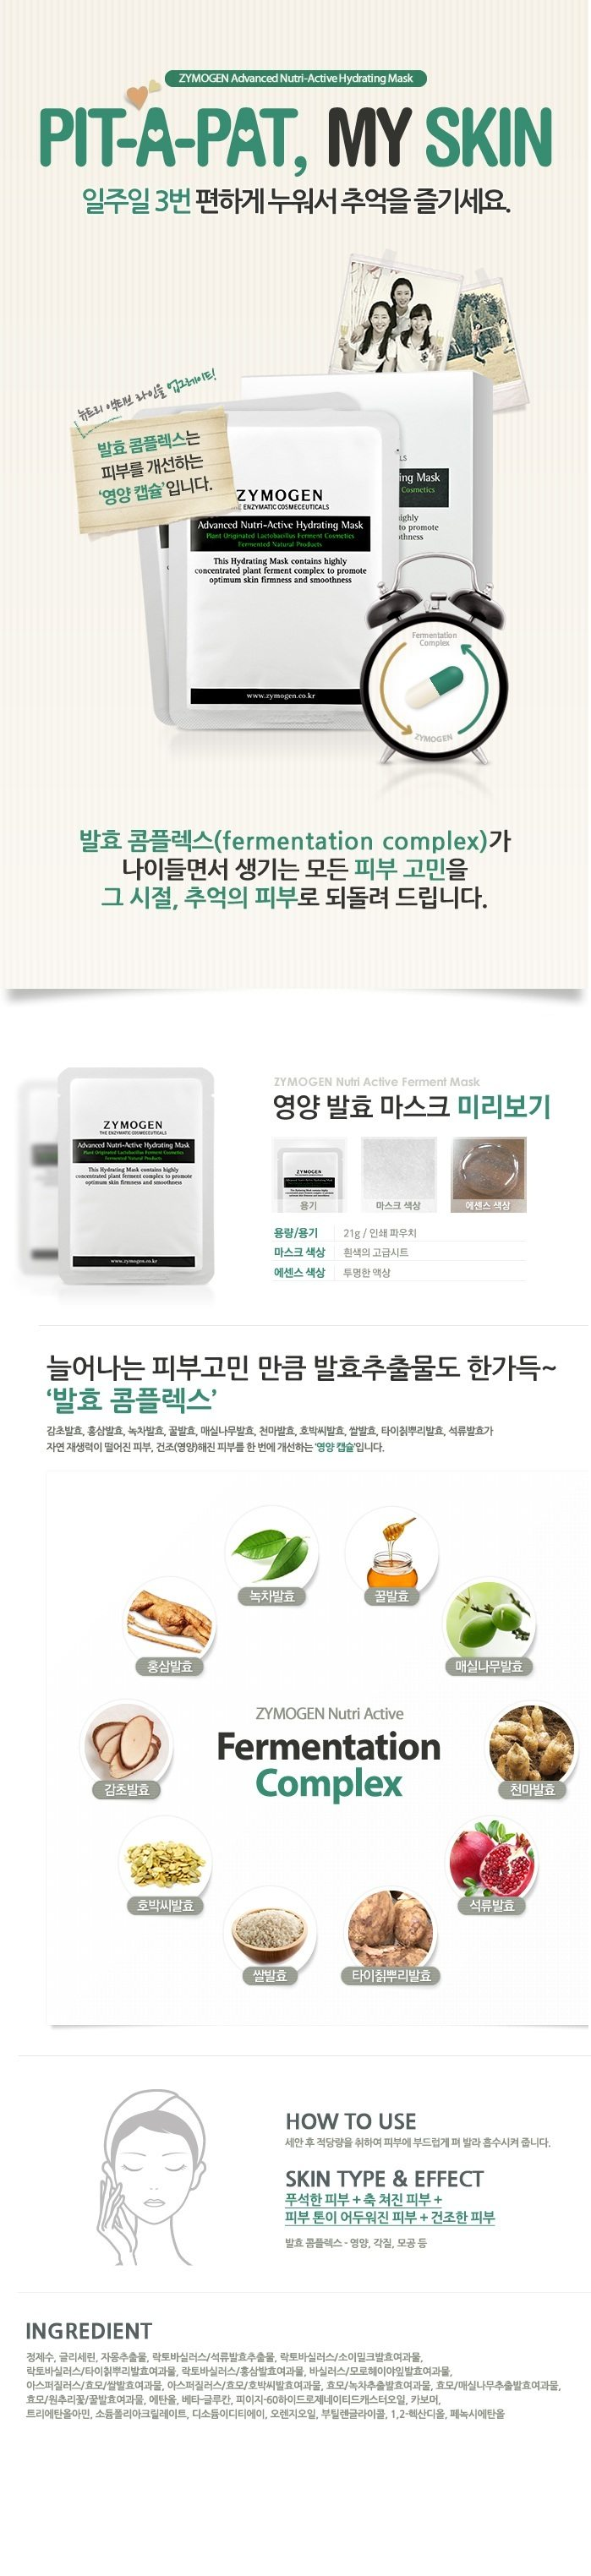 Zymogen Advanced Nutri Active Hydrating Mask 2 pcs korean cosmetic skincar product online shop malaysia brazil macau1